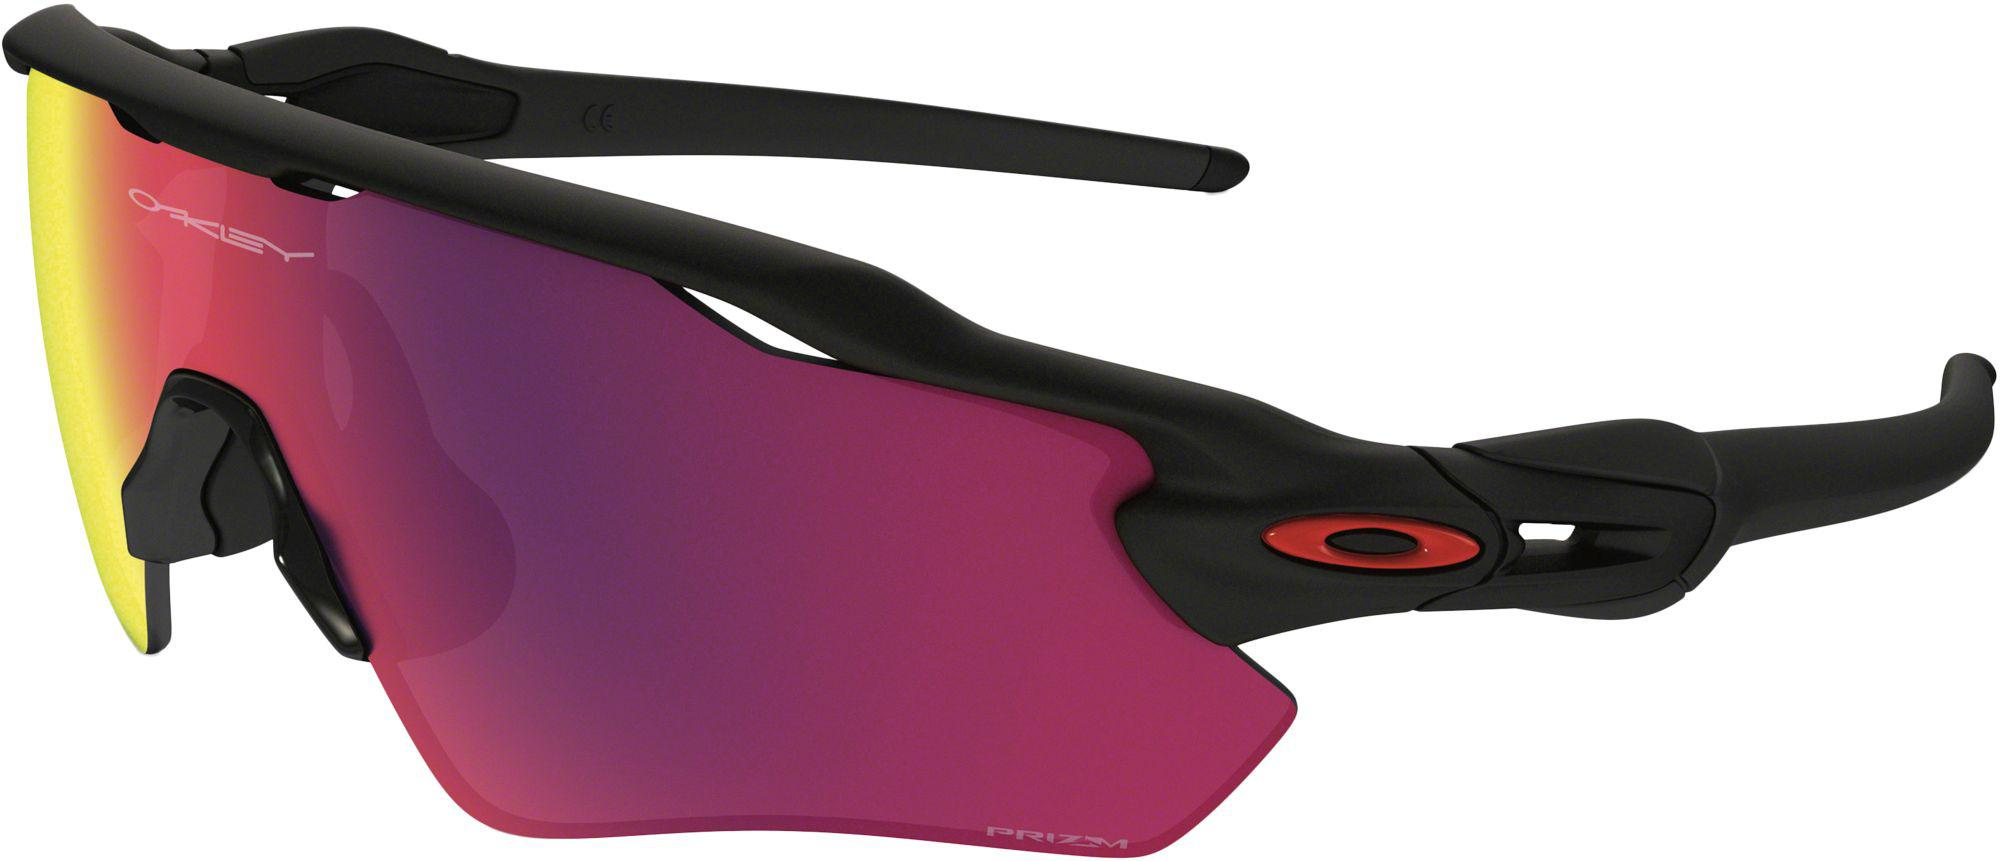 ad355aec9f54 Oakley - Black Radar Ev Path Prizm Road Sunglasses - Lyst. View fullscreen